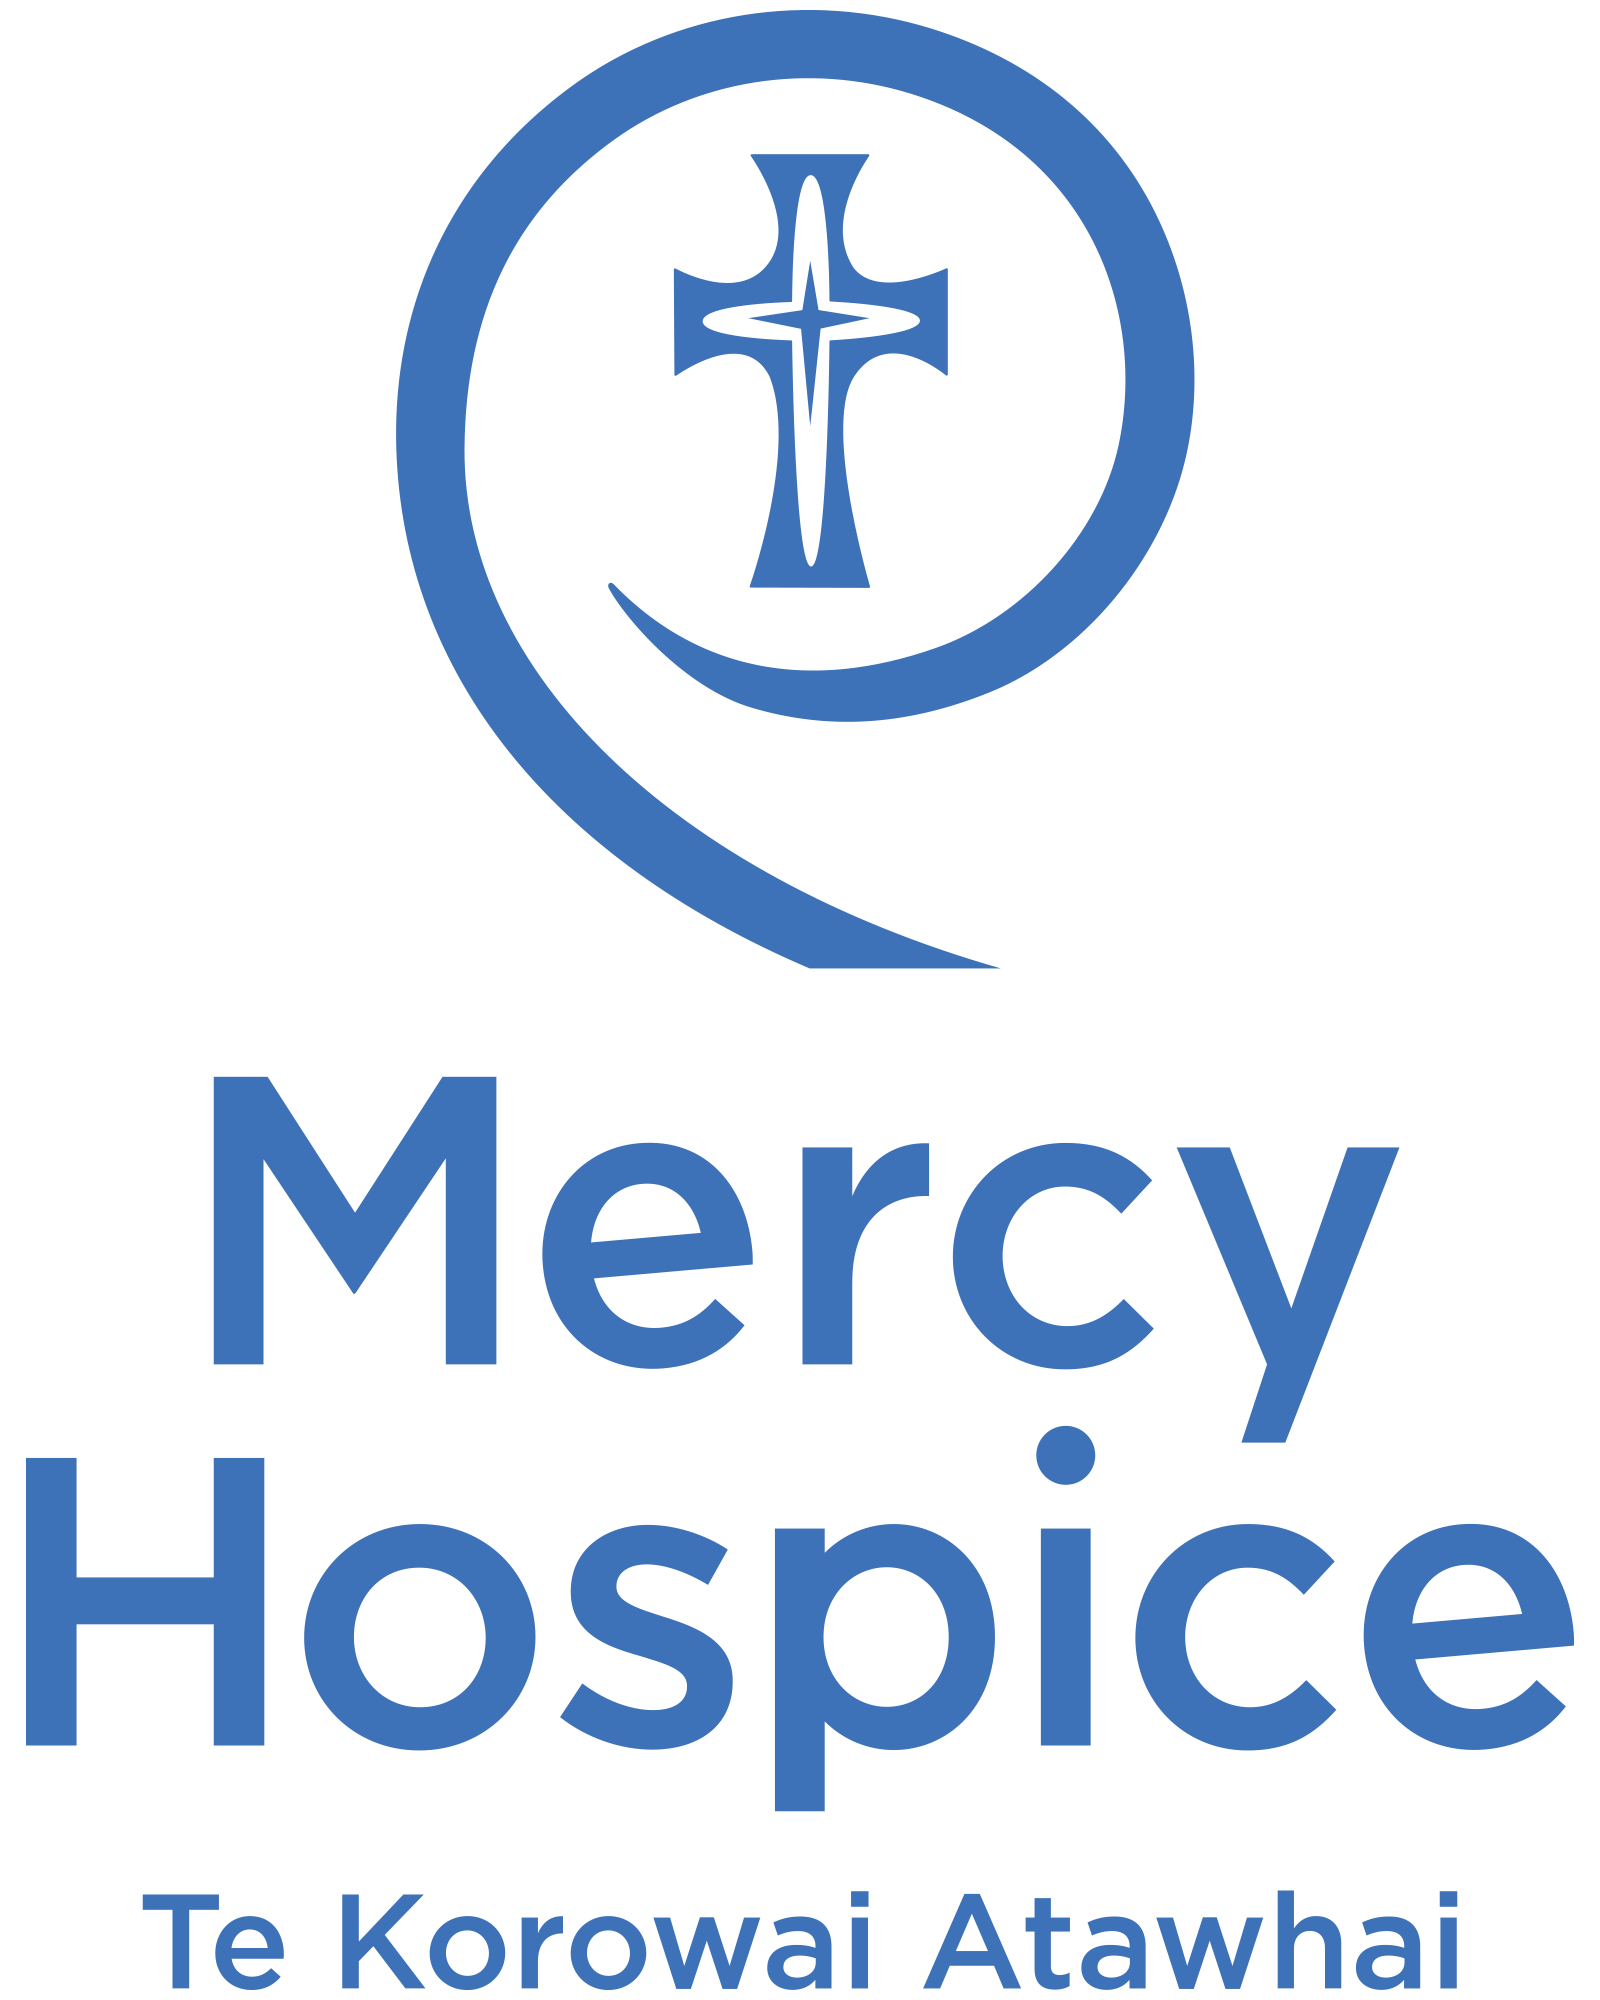 MercyHospice-logo-blue.png